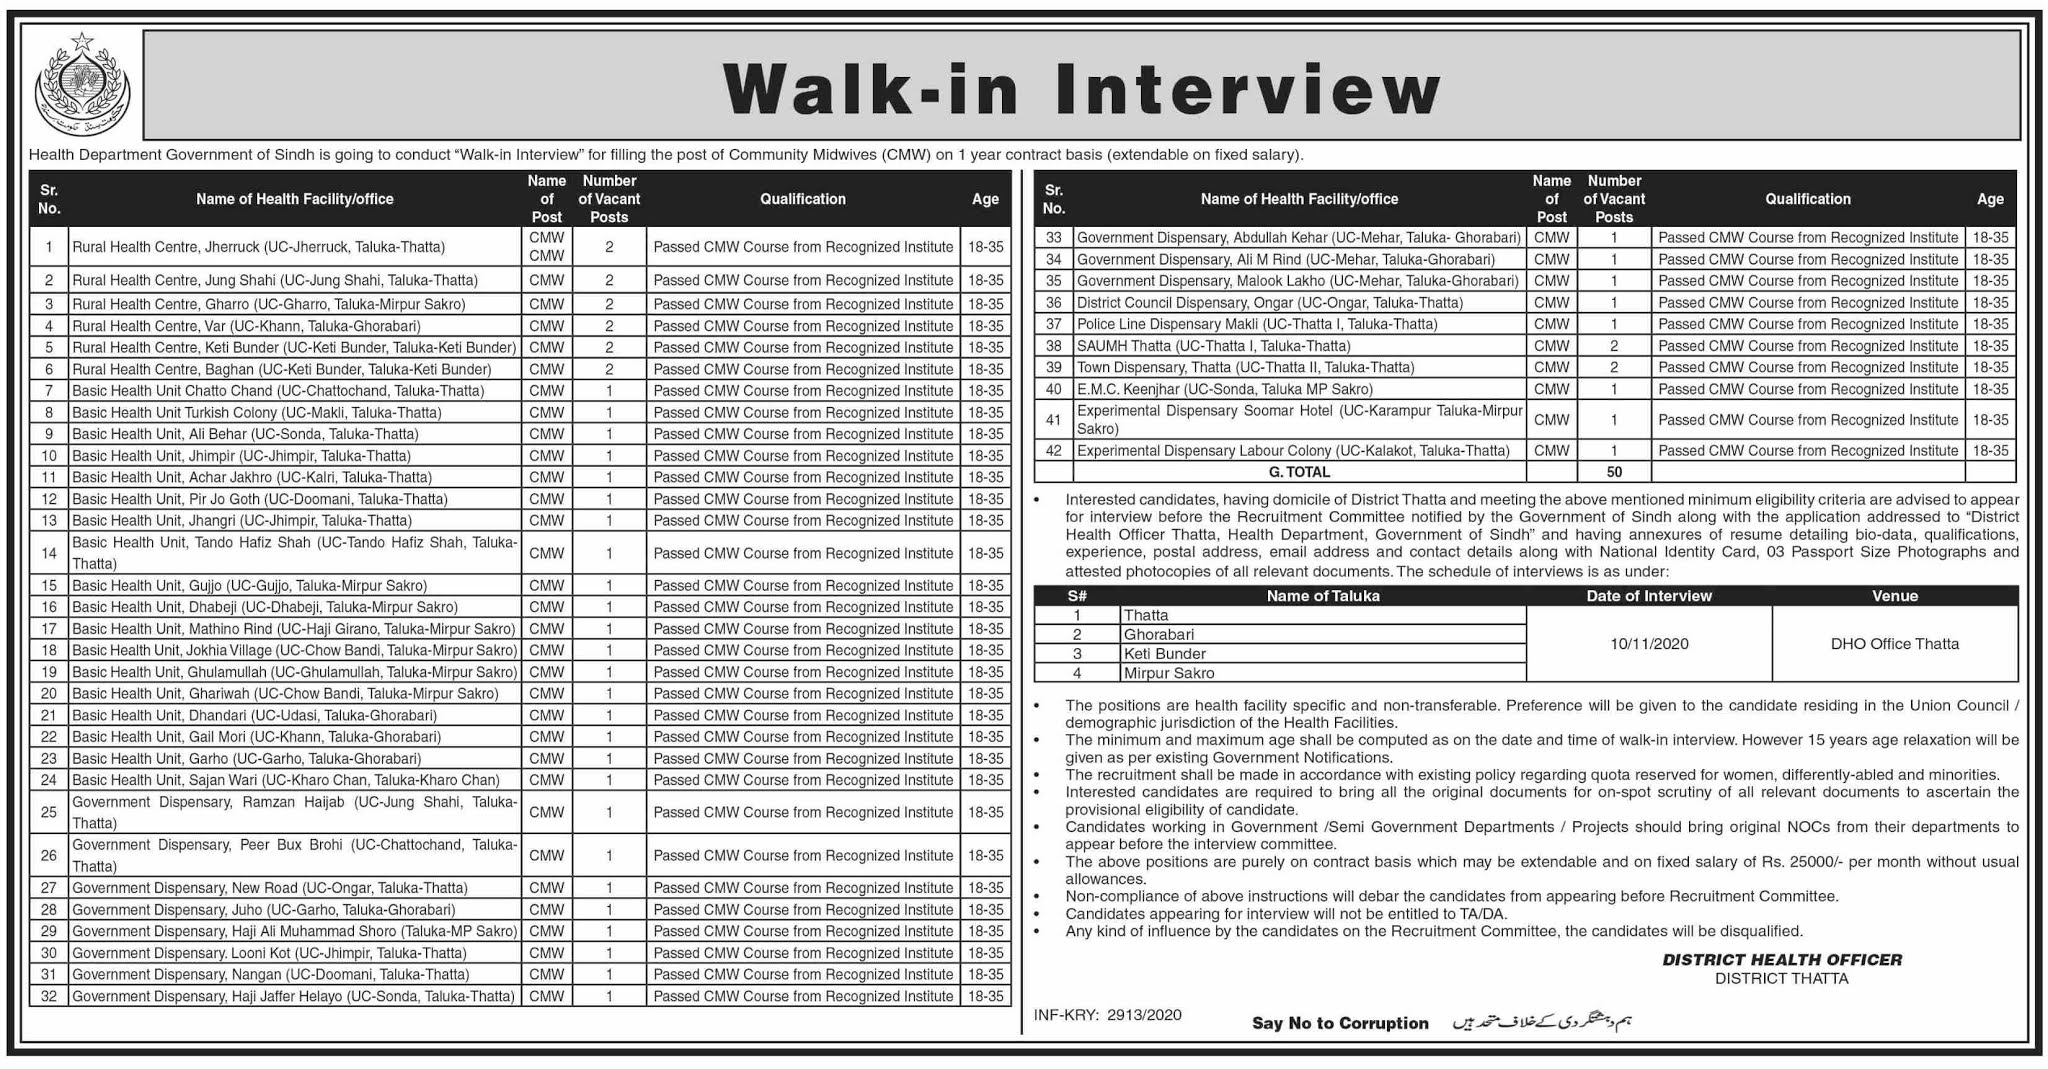 Health Department Govt Of Sindh Latest Jobs For Community Midwife CMW in Pakistan Jobs 2021-2022